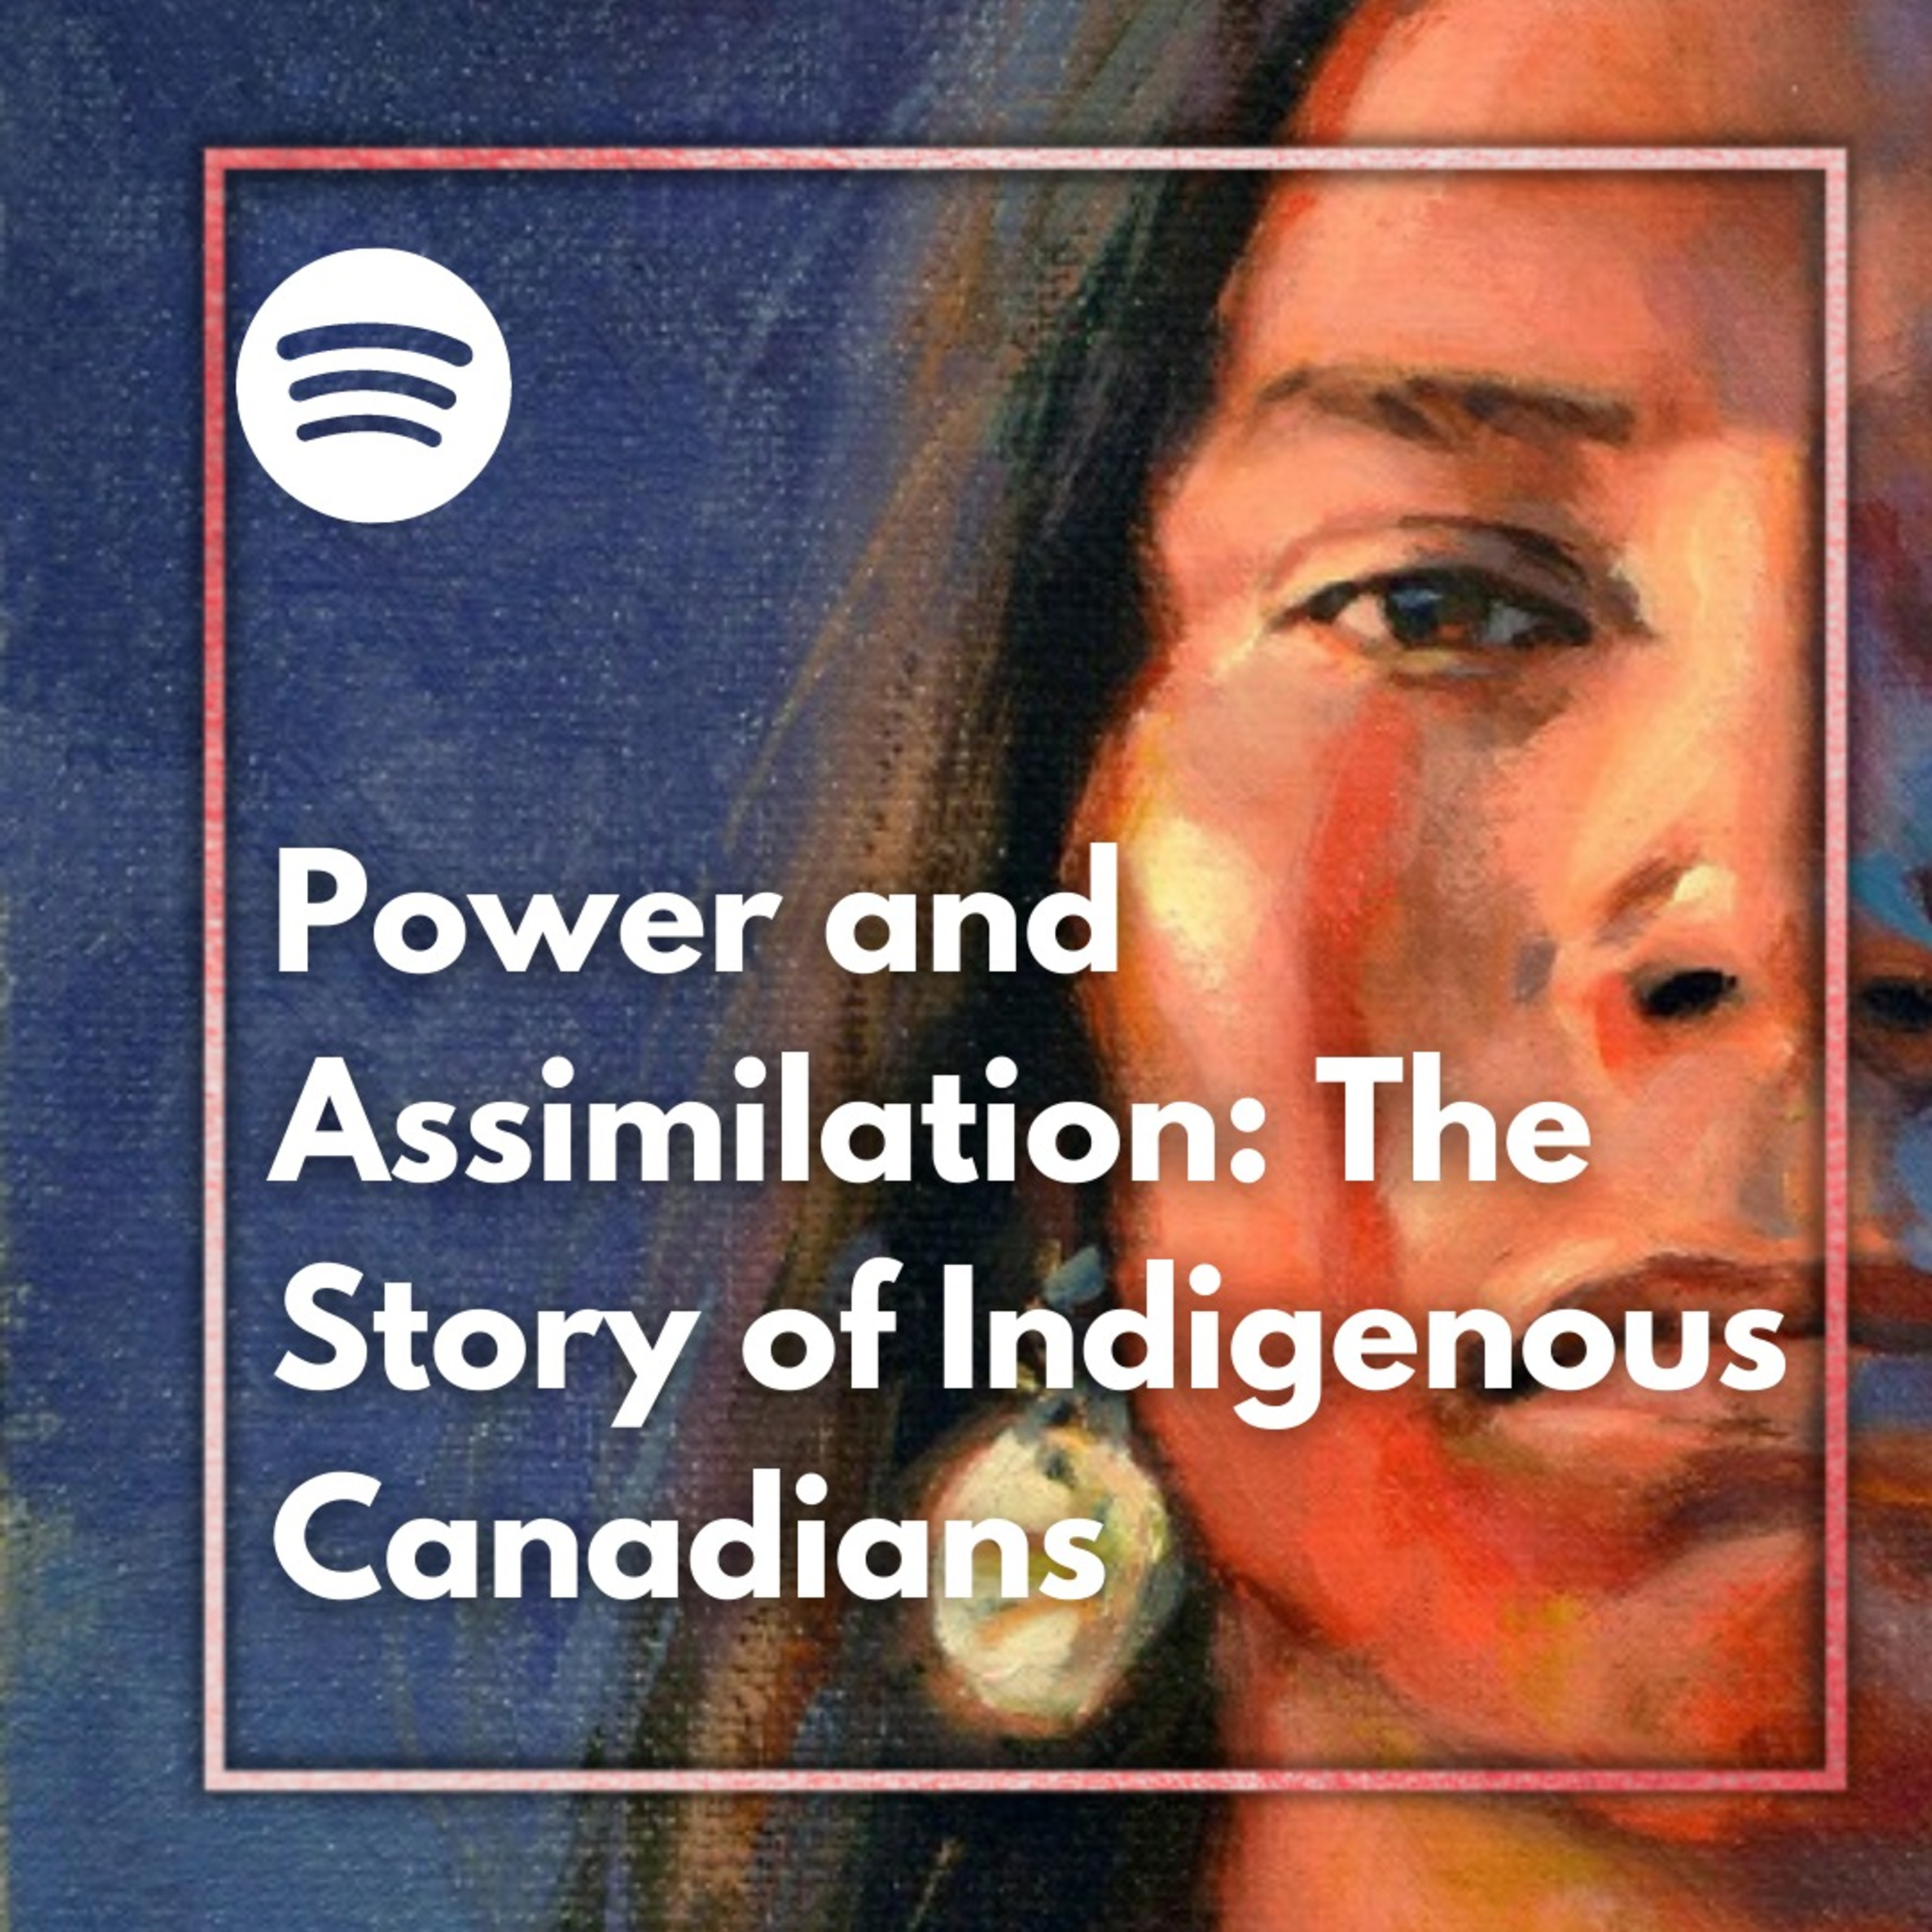 Power and assimilation: The story of indigenous Canadians